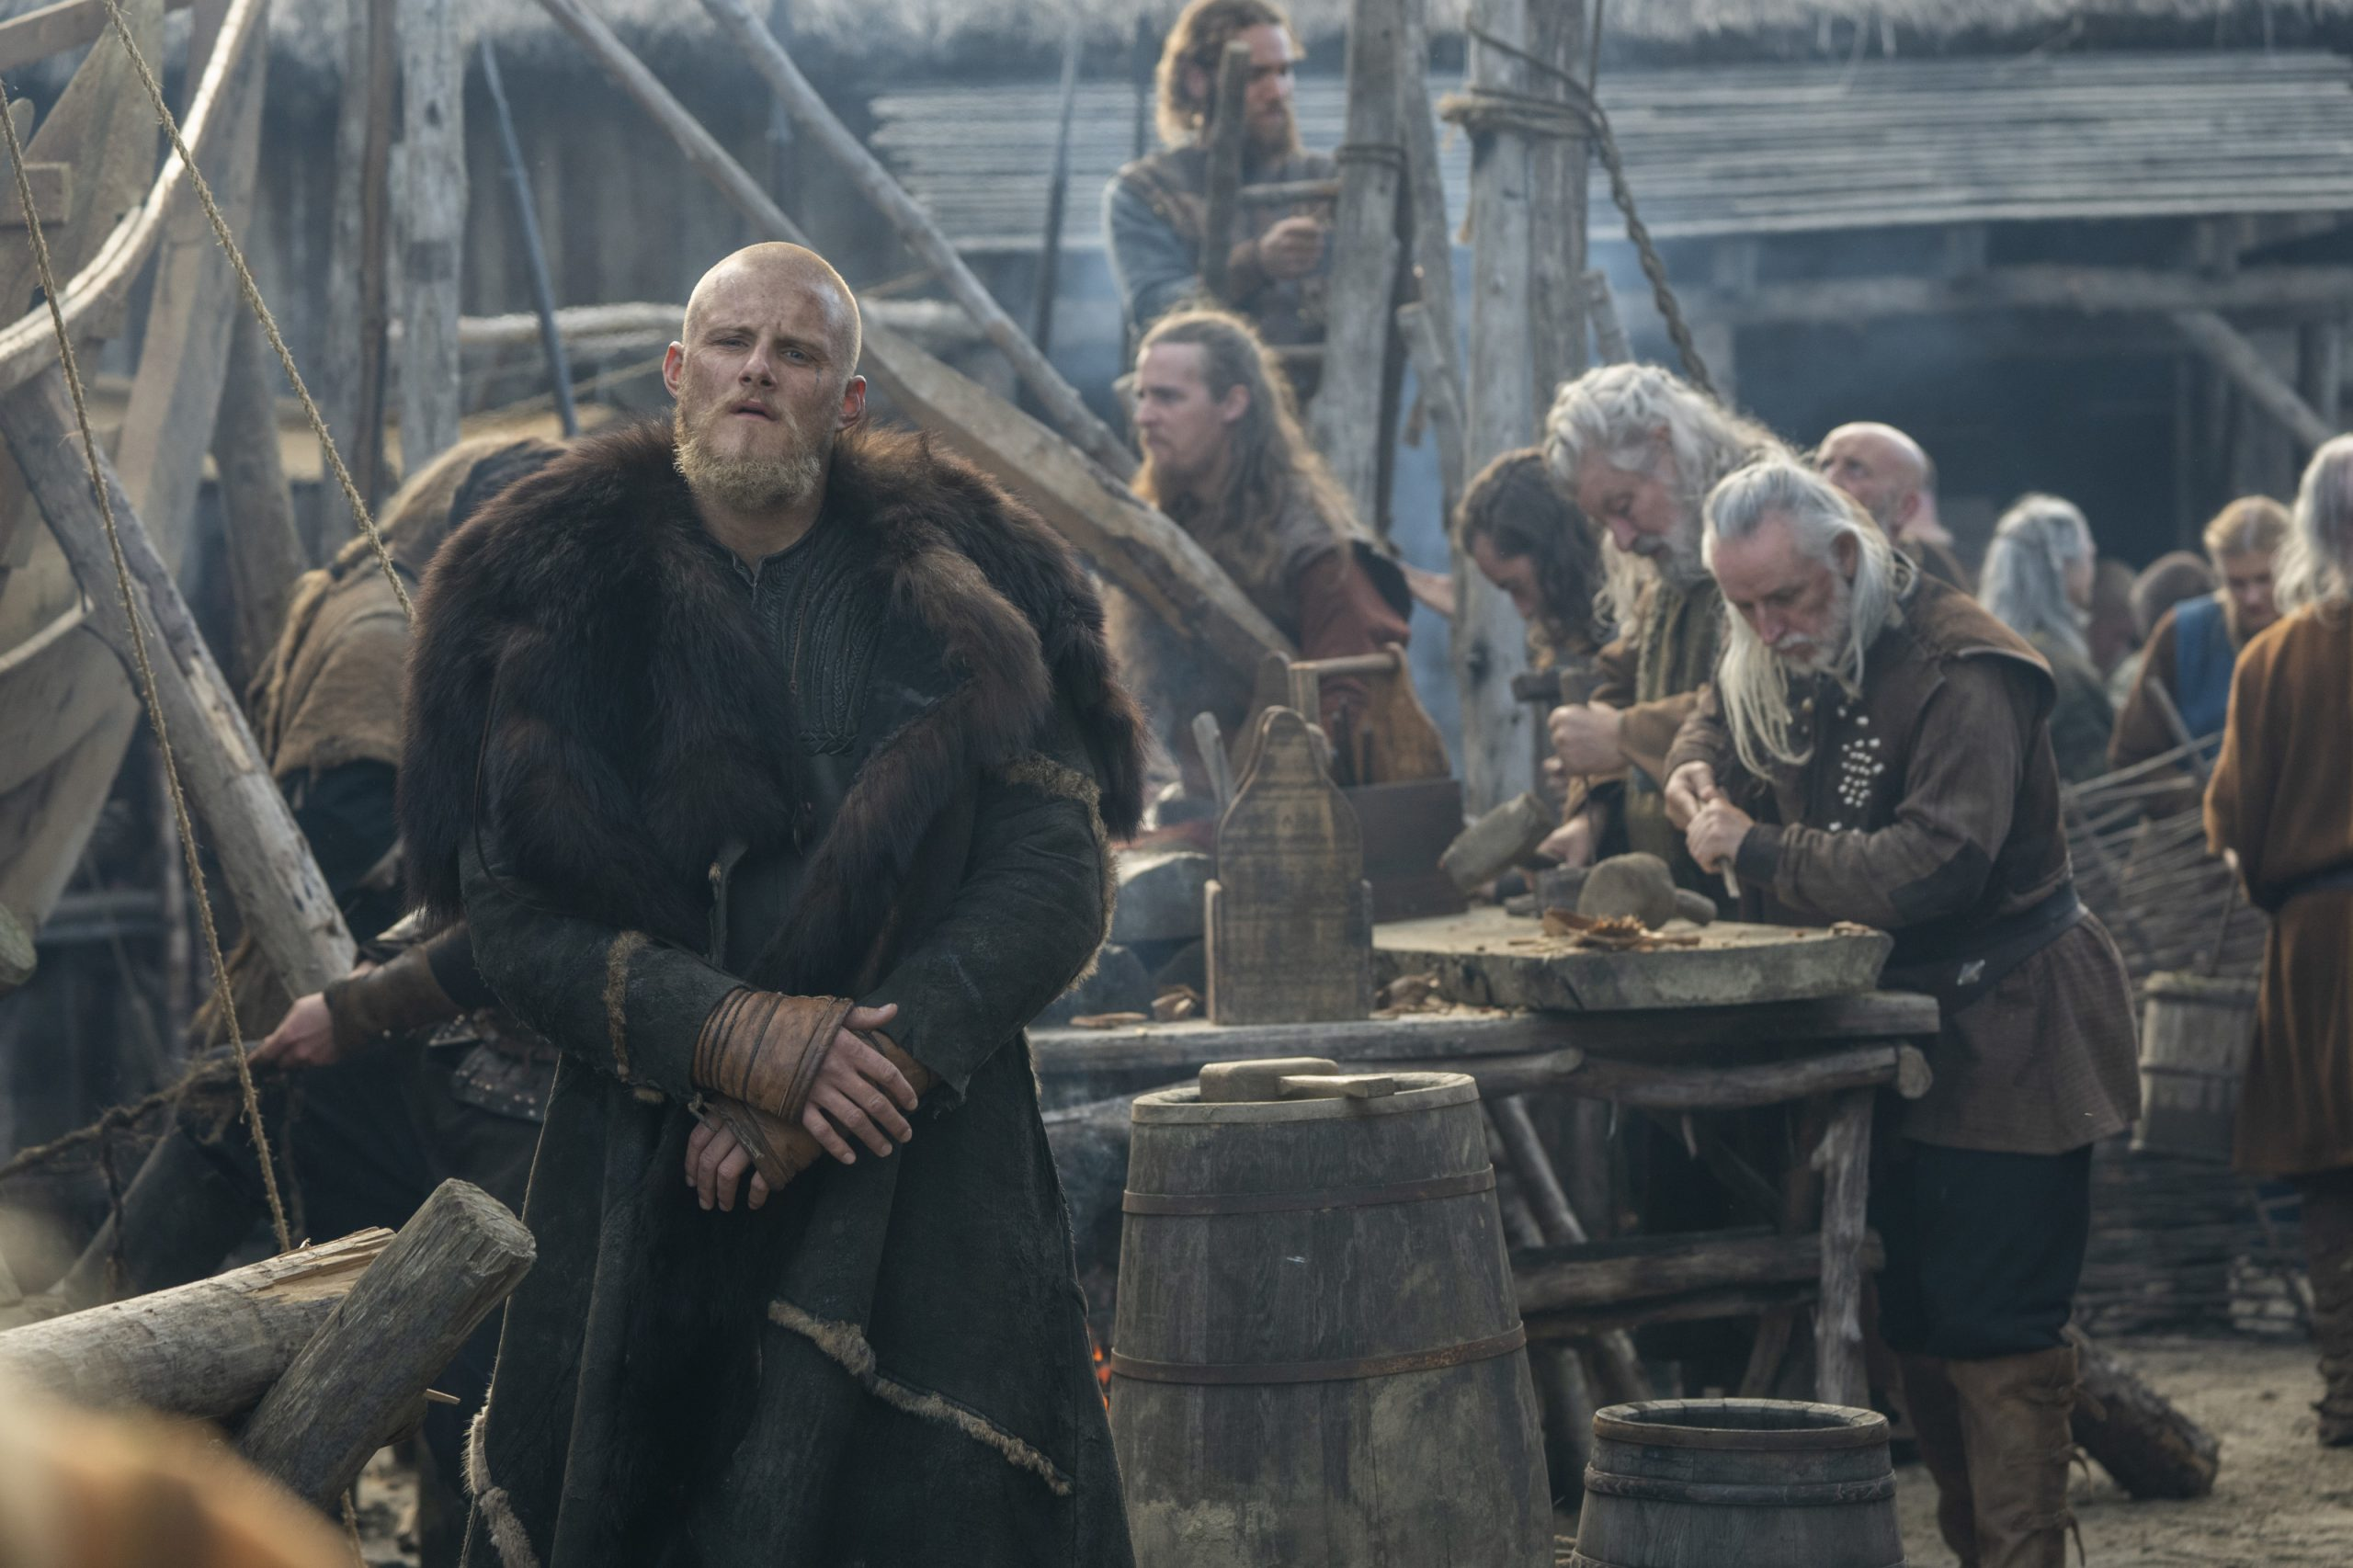 Vikings Season 6 Part 2 Everything You Need To Know About Upcoming Episodes